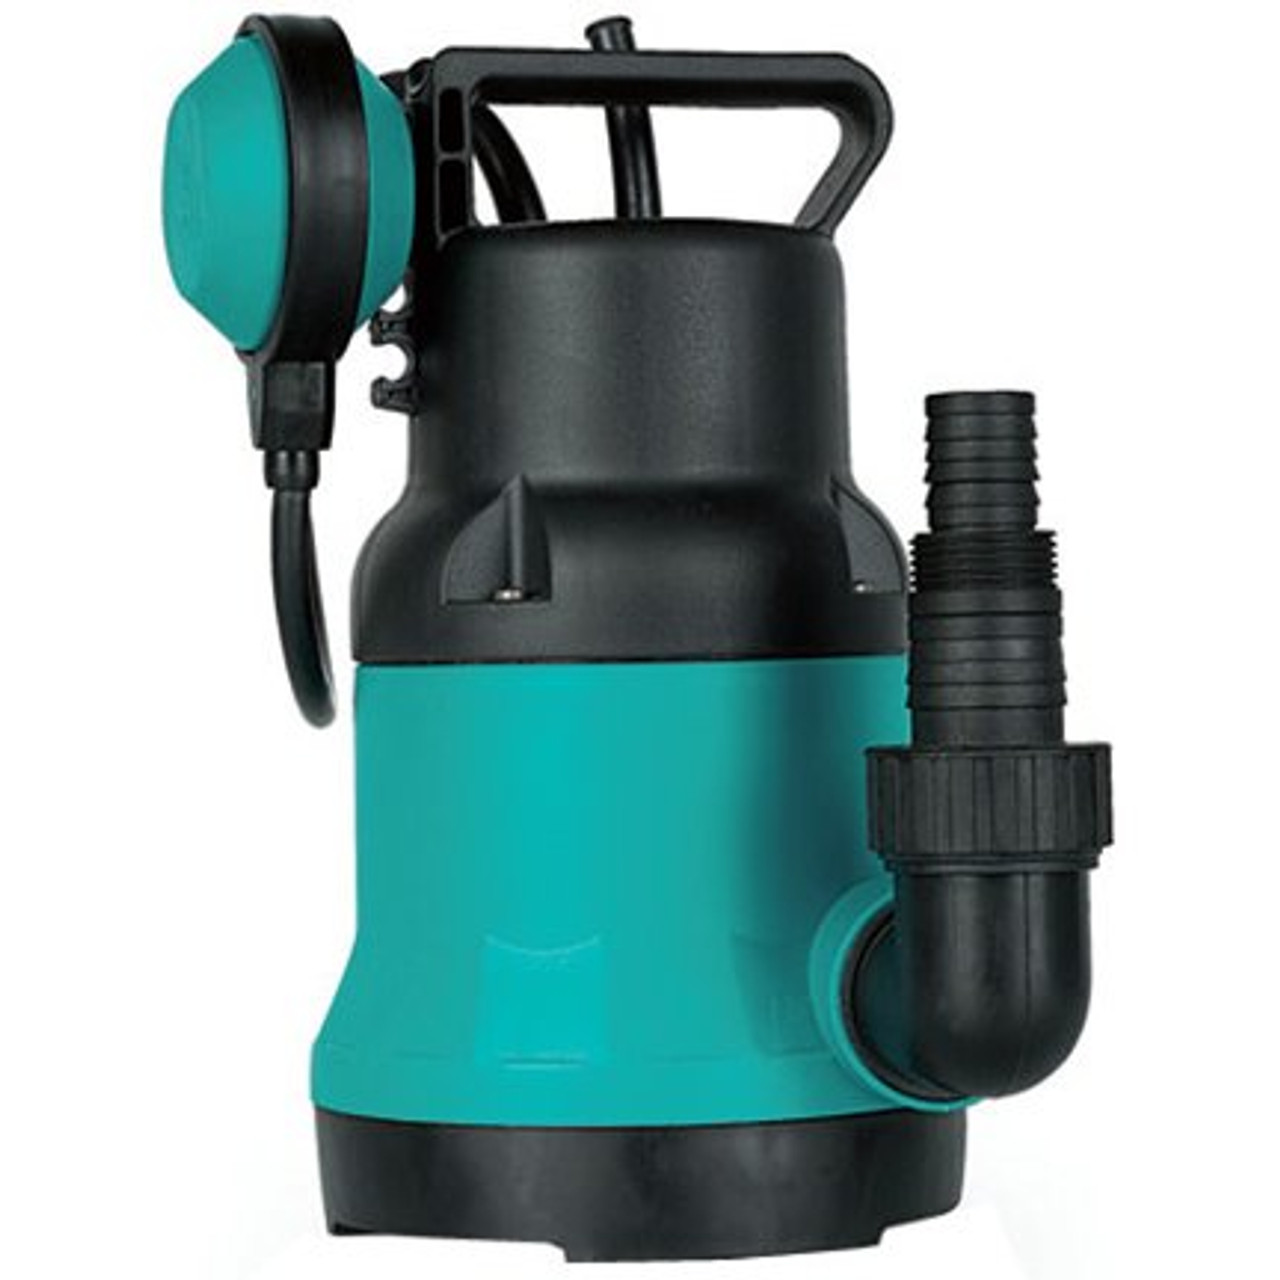 Premium Submersible Pump for Spas and Swimming Pools